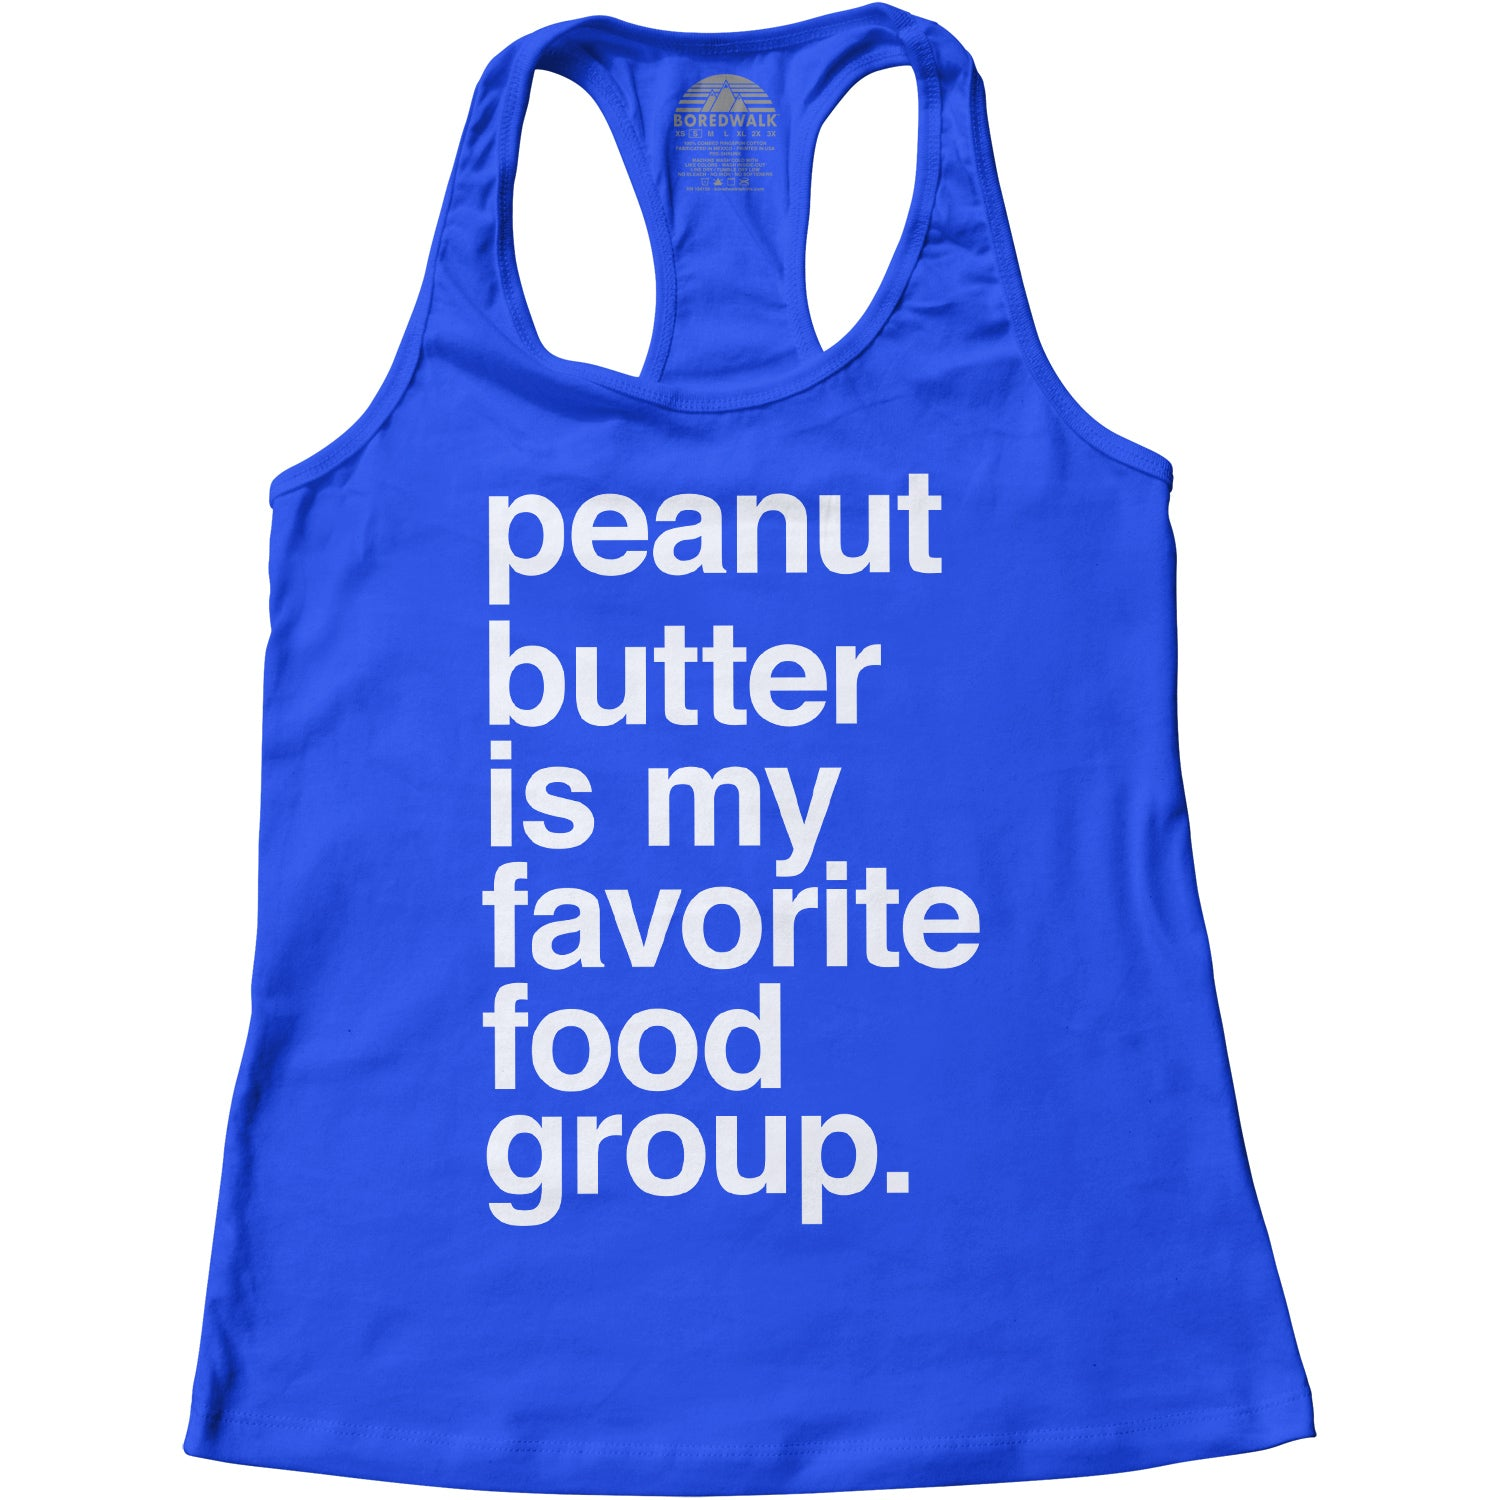 Women's Peanut Butter is My Favorite Food Group Racerback Tank Top